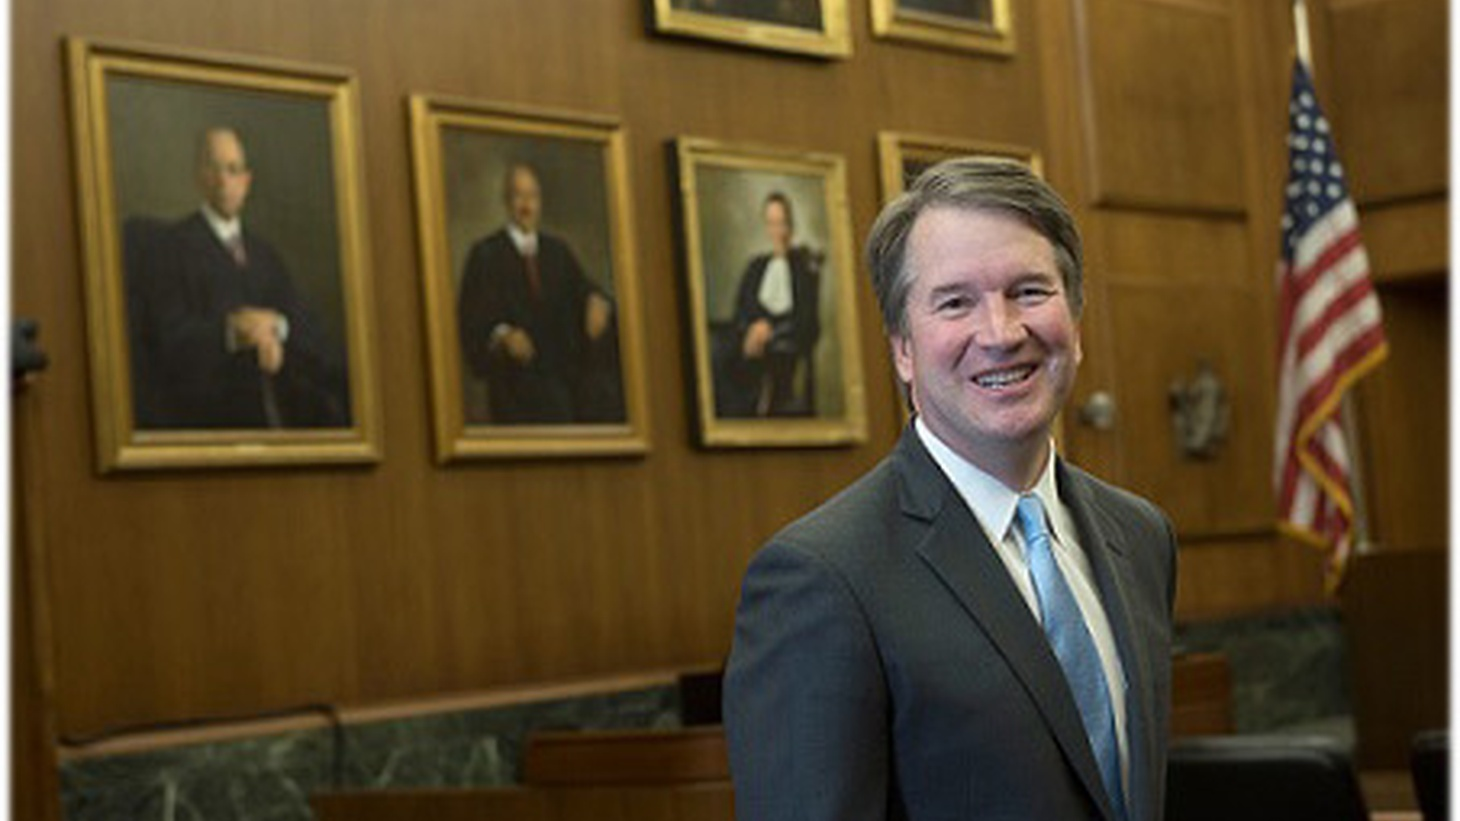 The Senate Judiciary committee voted to move Brett Kavanaugh's Supreme Court nomination to a full Senate vote. But Arizona Senator Jeff Flake asked that there be a one-week FBI investigation that would delay that vote.